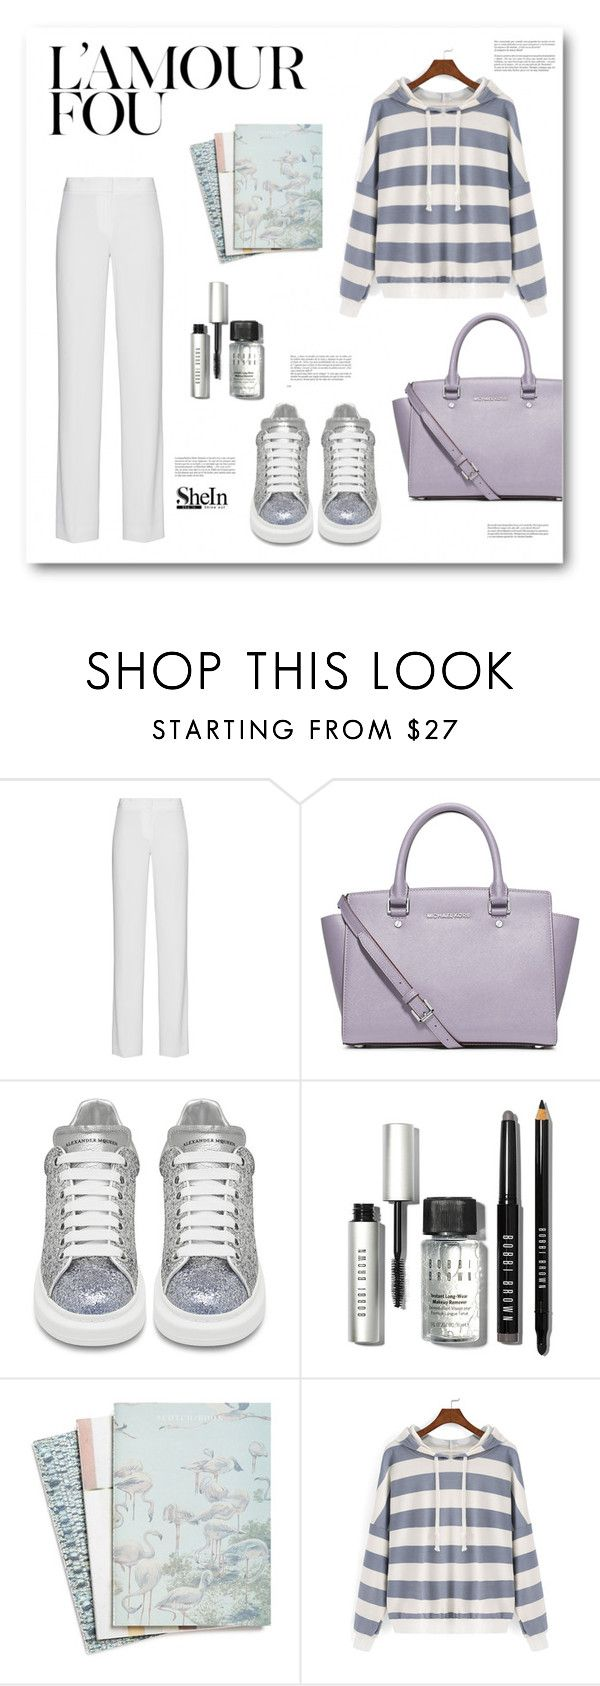 """Baby Don't Cry (EXO)"" by miryoserra on Polyvore featuring DKNY, MICHAEL Michael Kors, Alexander McQueen, Bobbi Brown Cosmetics, Maison Scotch and Whiteley"